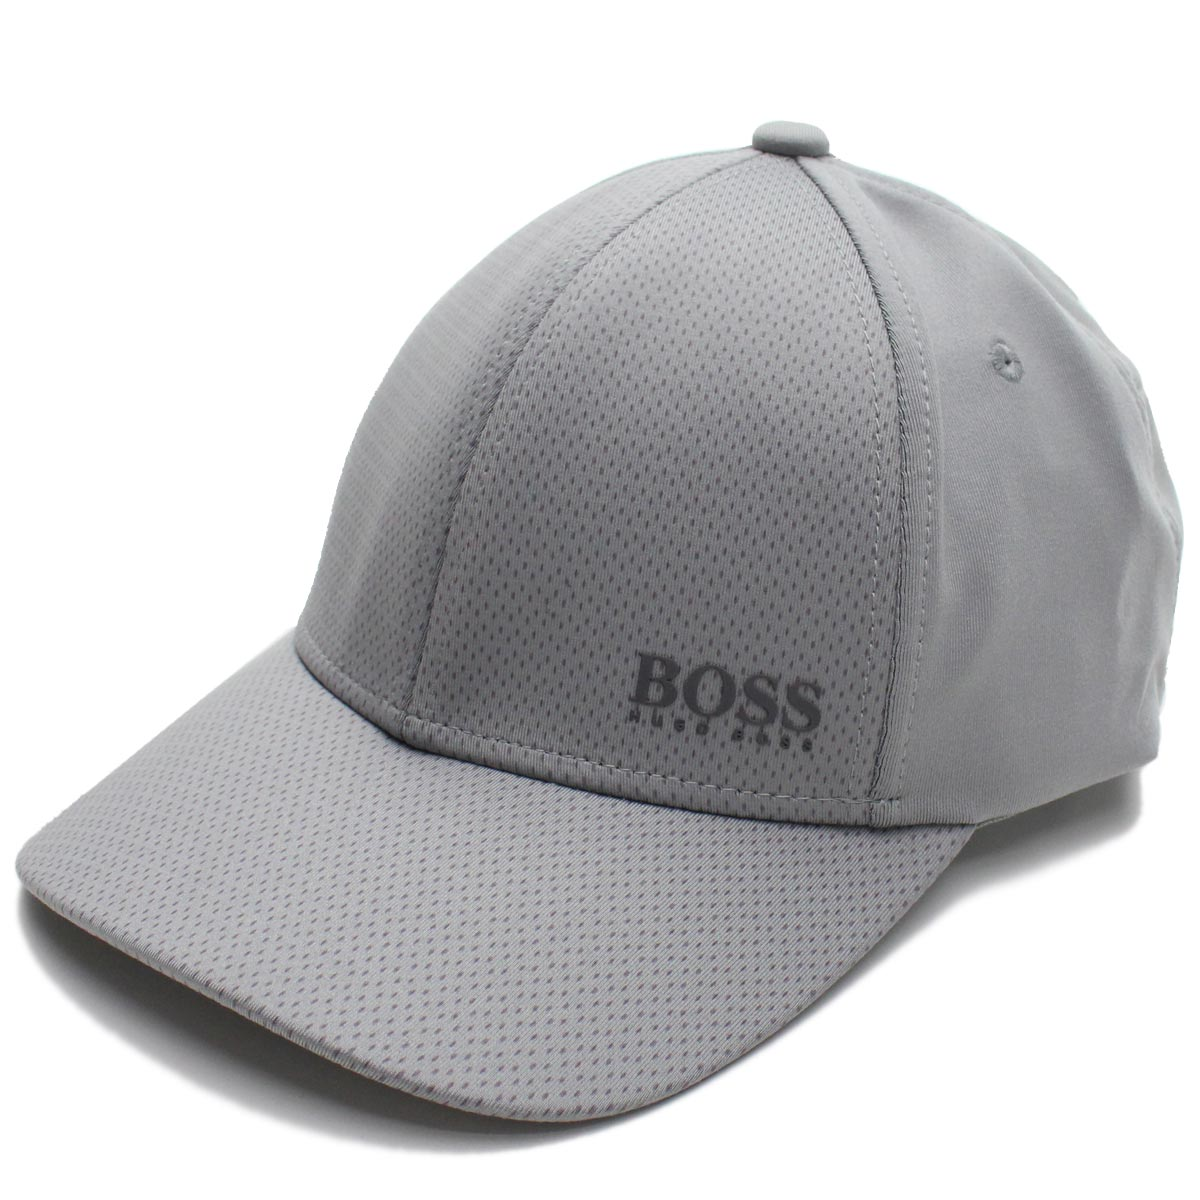 8f6e68a9b Mesh caps of the entering logo are received from Hugo Boss. It becomes the  working material of the stretch and plays an active part in the light  weight in ...